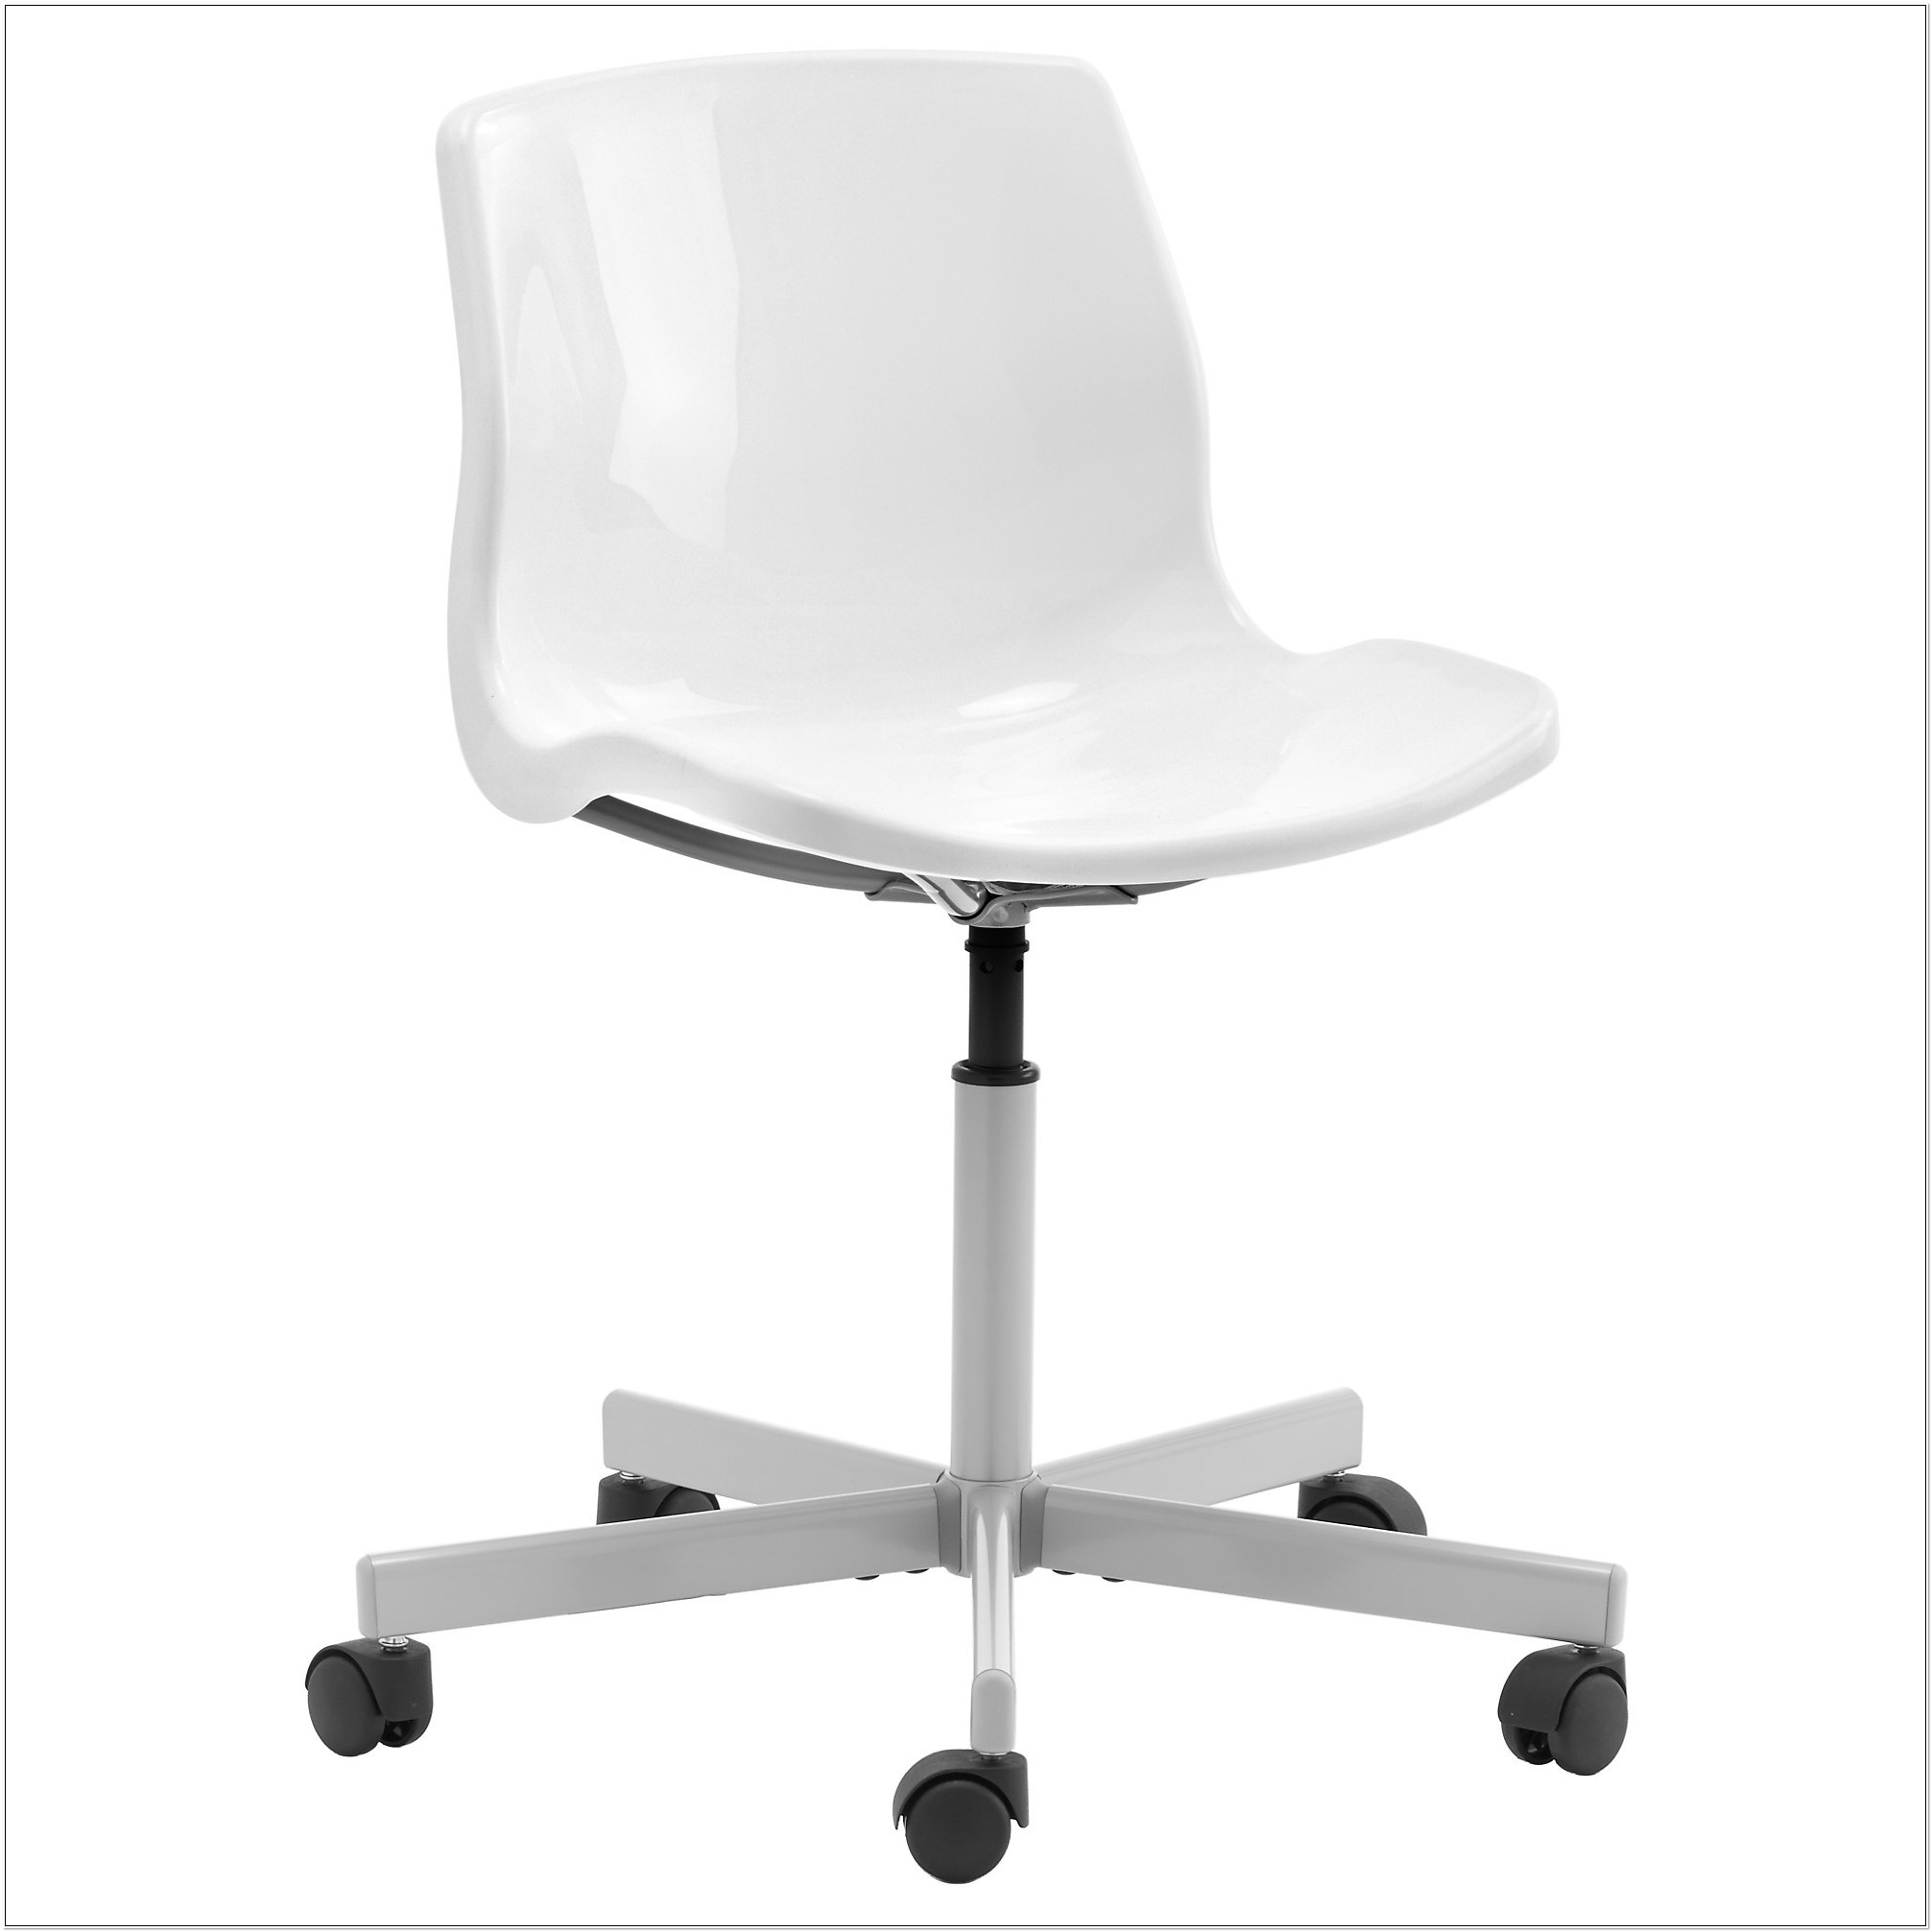 White Desk Chairs Ikea